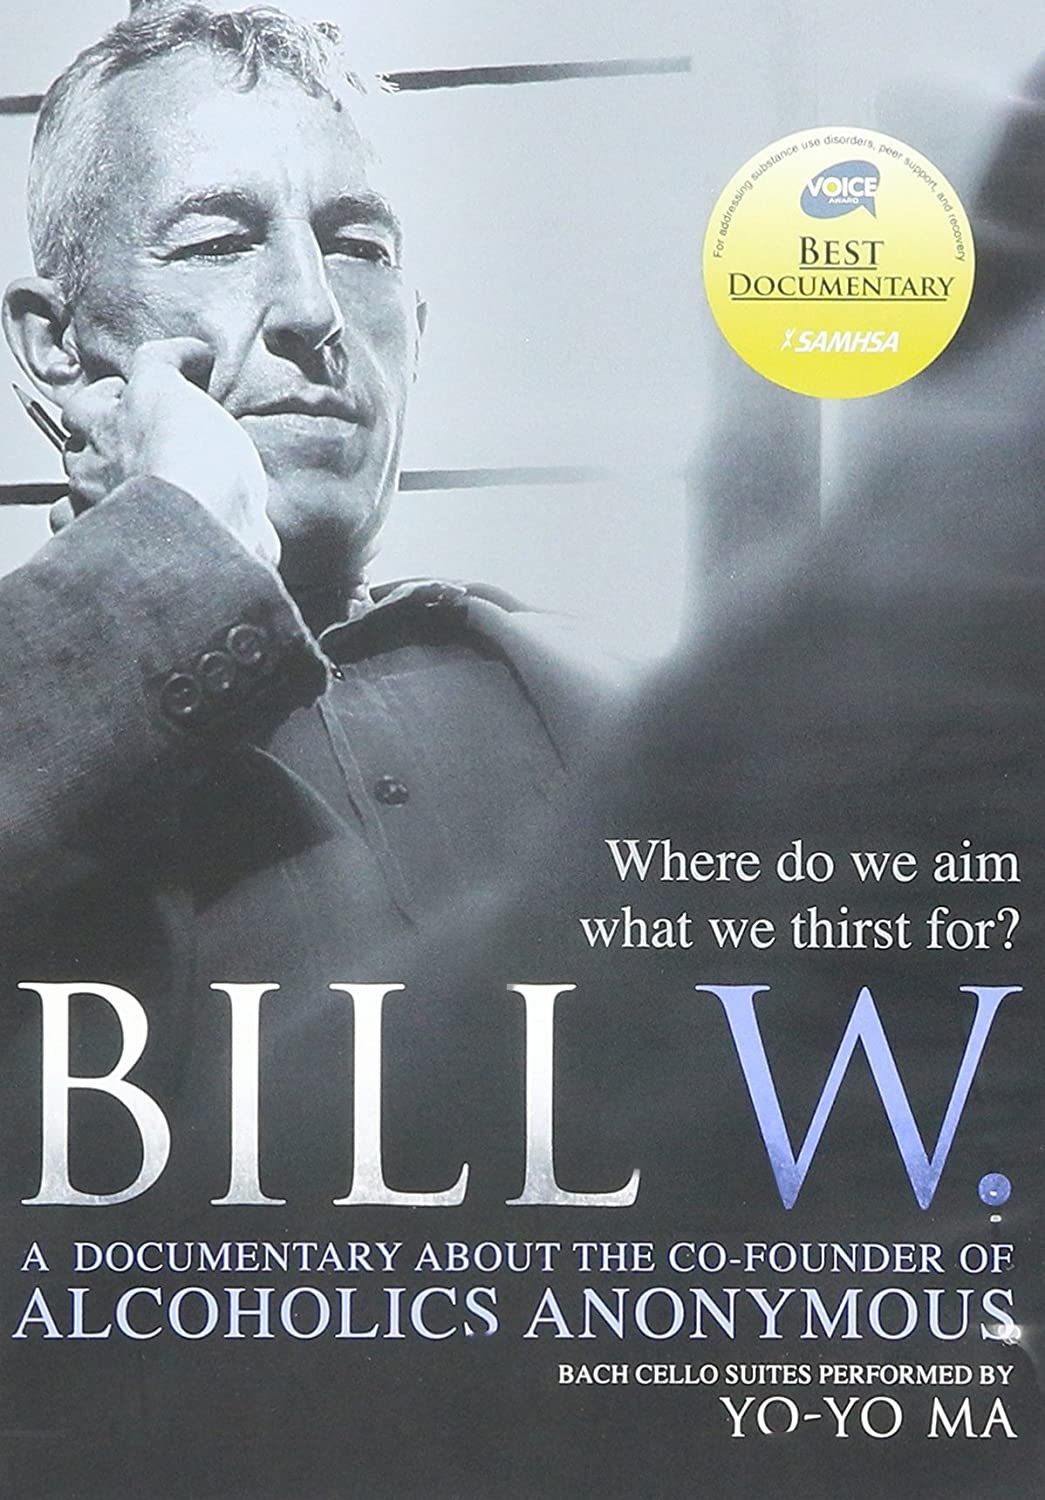 Amazon.com: Bill W. - A Documentary About the Co-founder of Alcoholics Anonymous: Dan Carracino Kevin Hanlon: Movies & TV